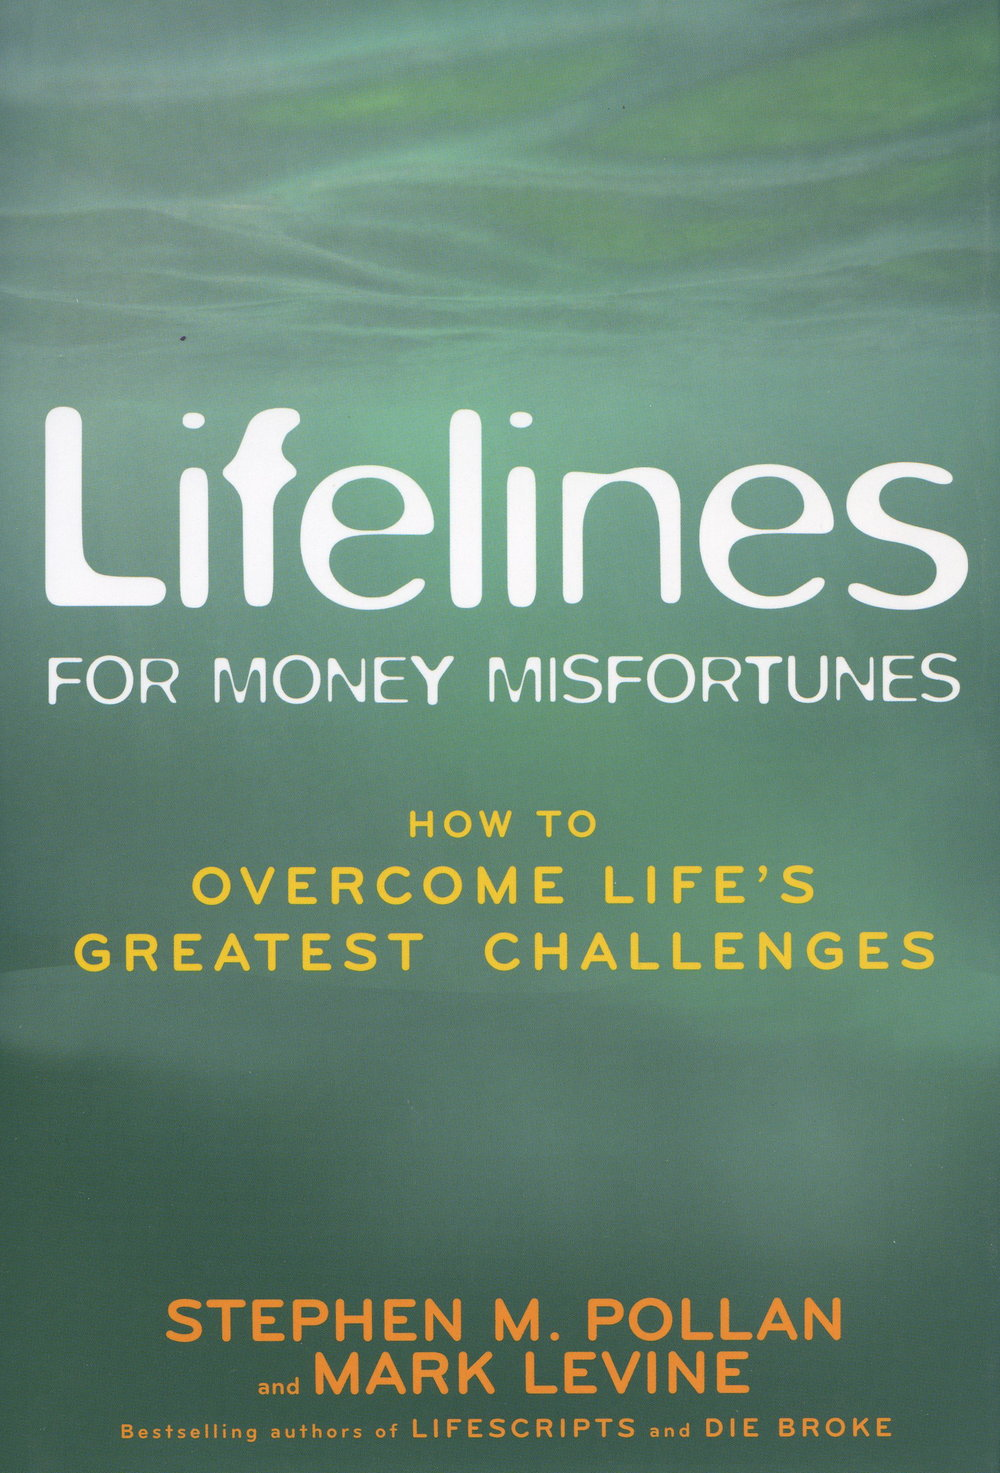 Lifelines For Money Misfortunes.jpg